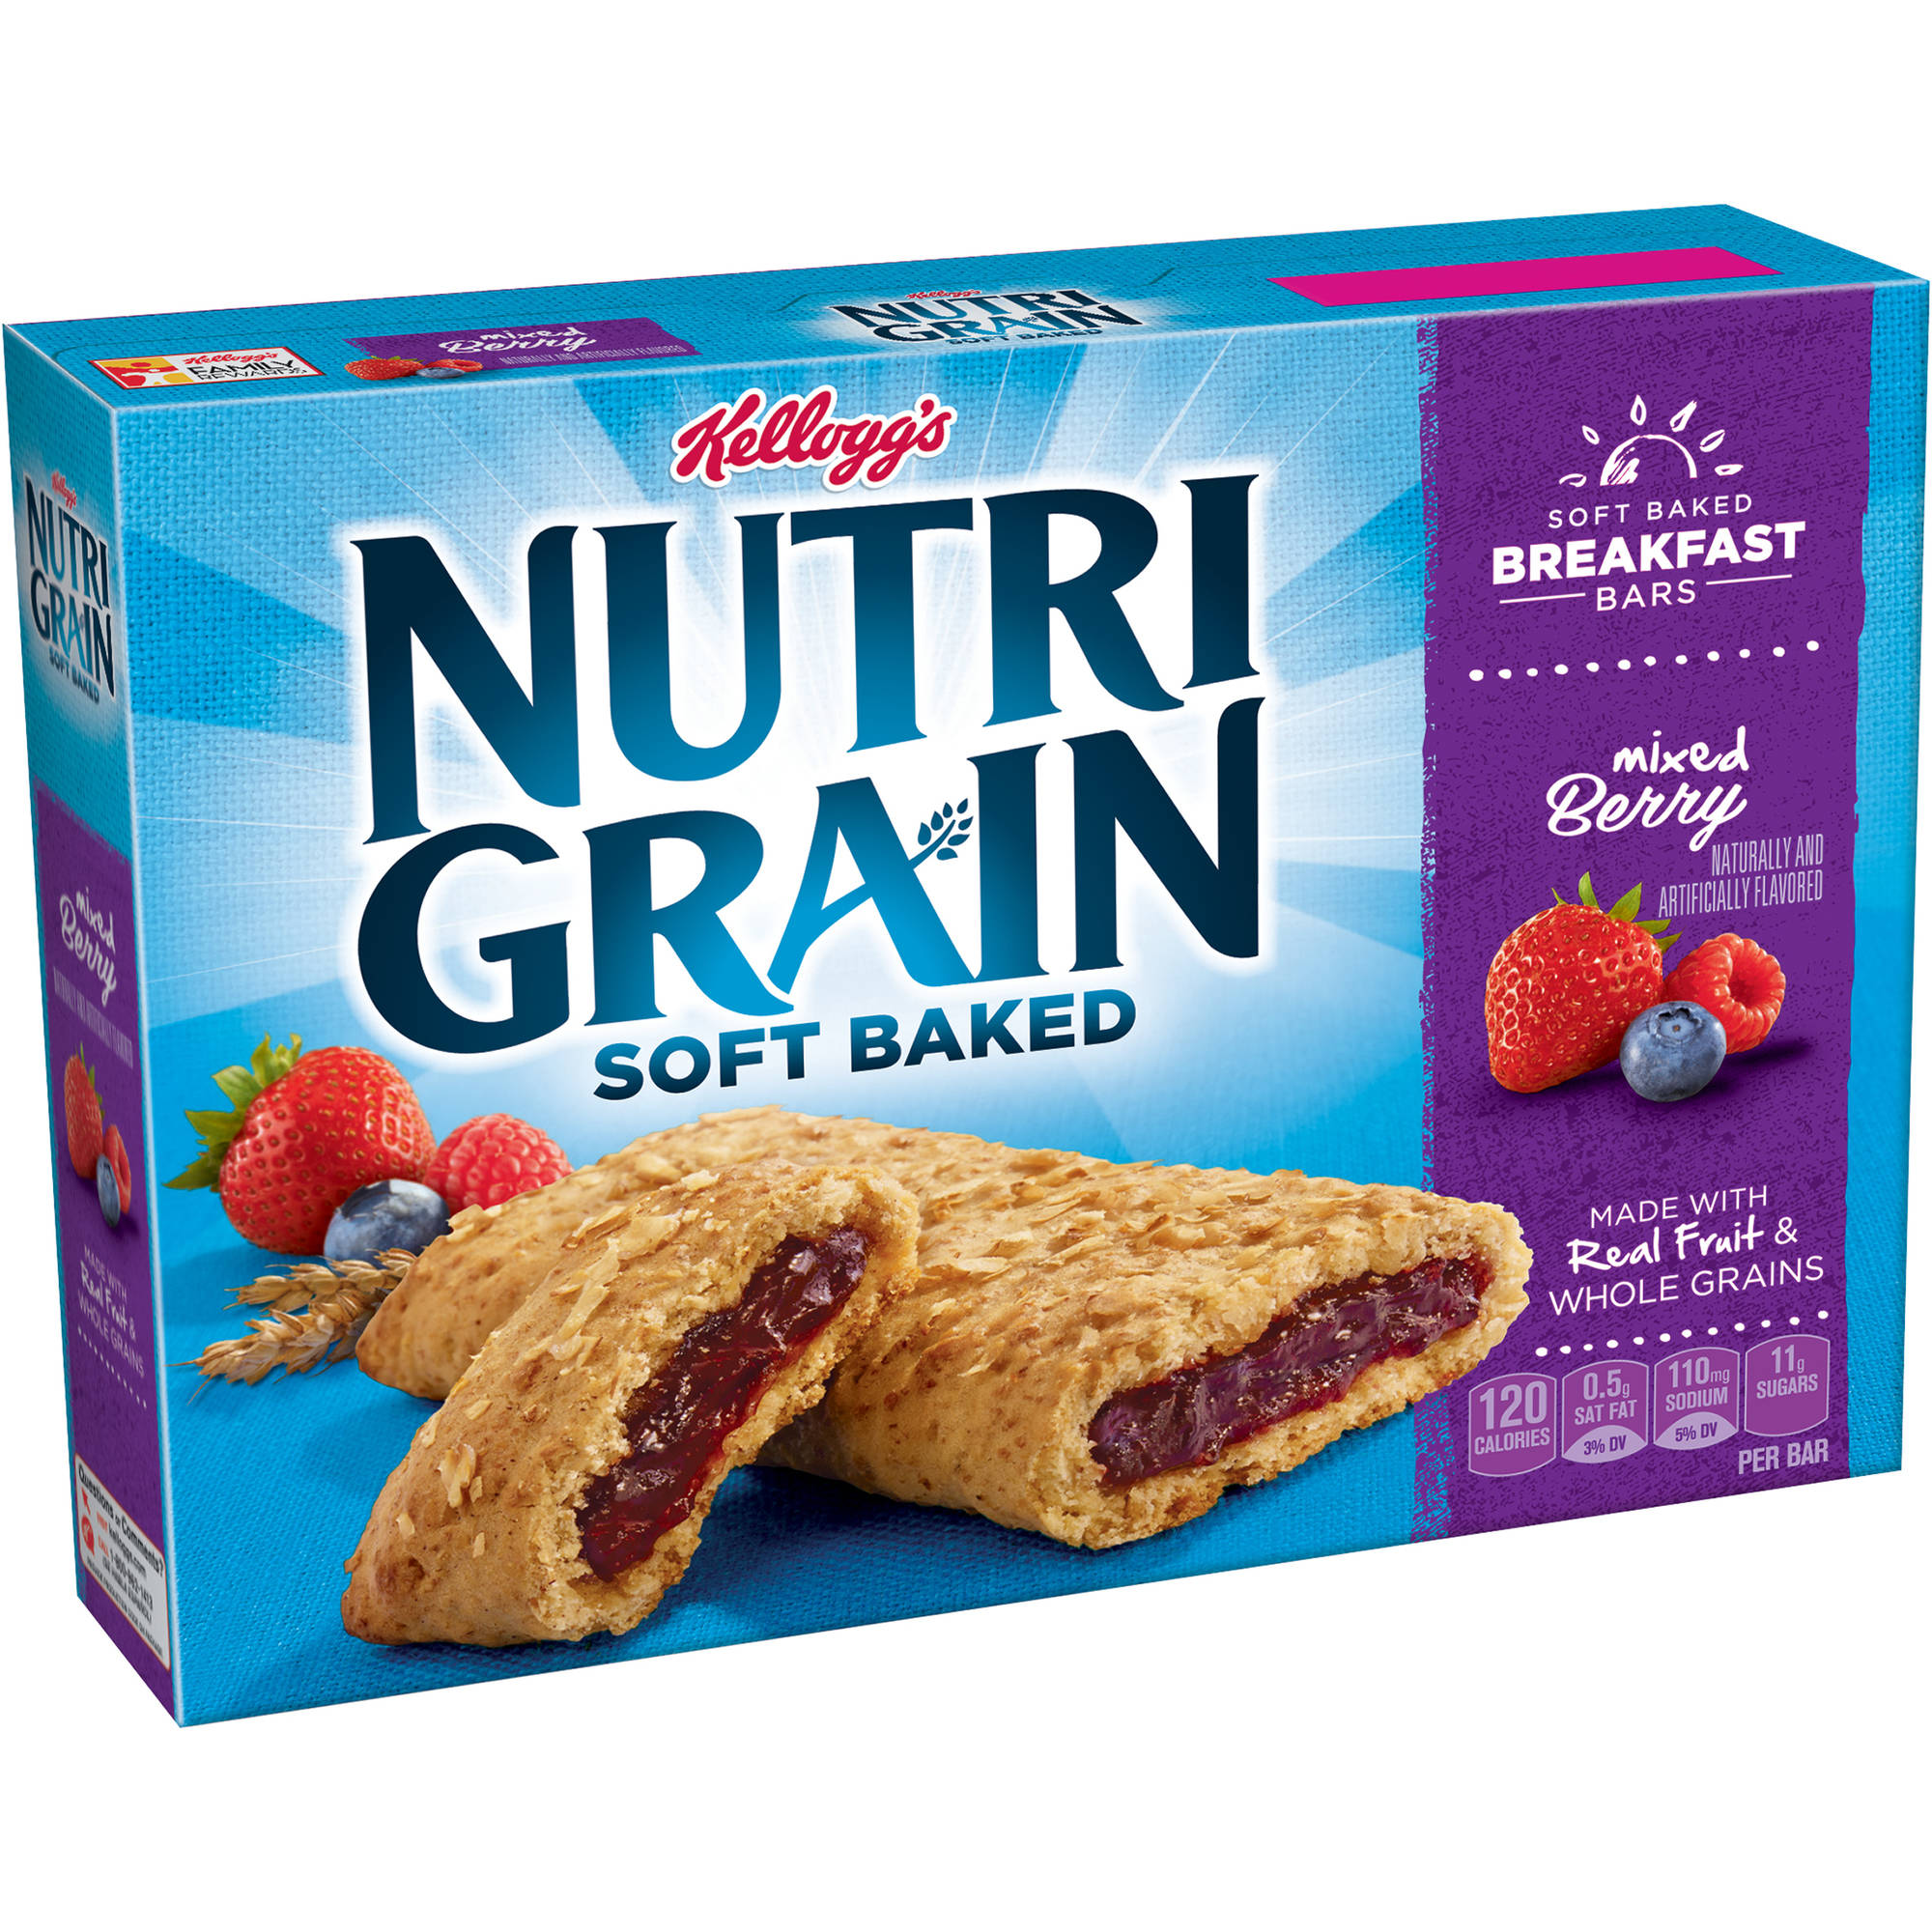 Kellogg's Nutri-Grain Soft Baked Mixed Berry Breakfast Bars, 1.3oz 8ct